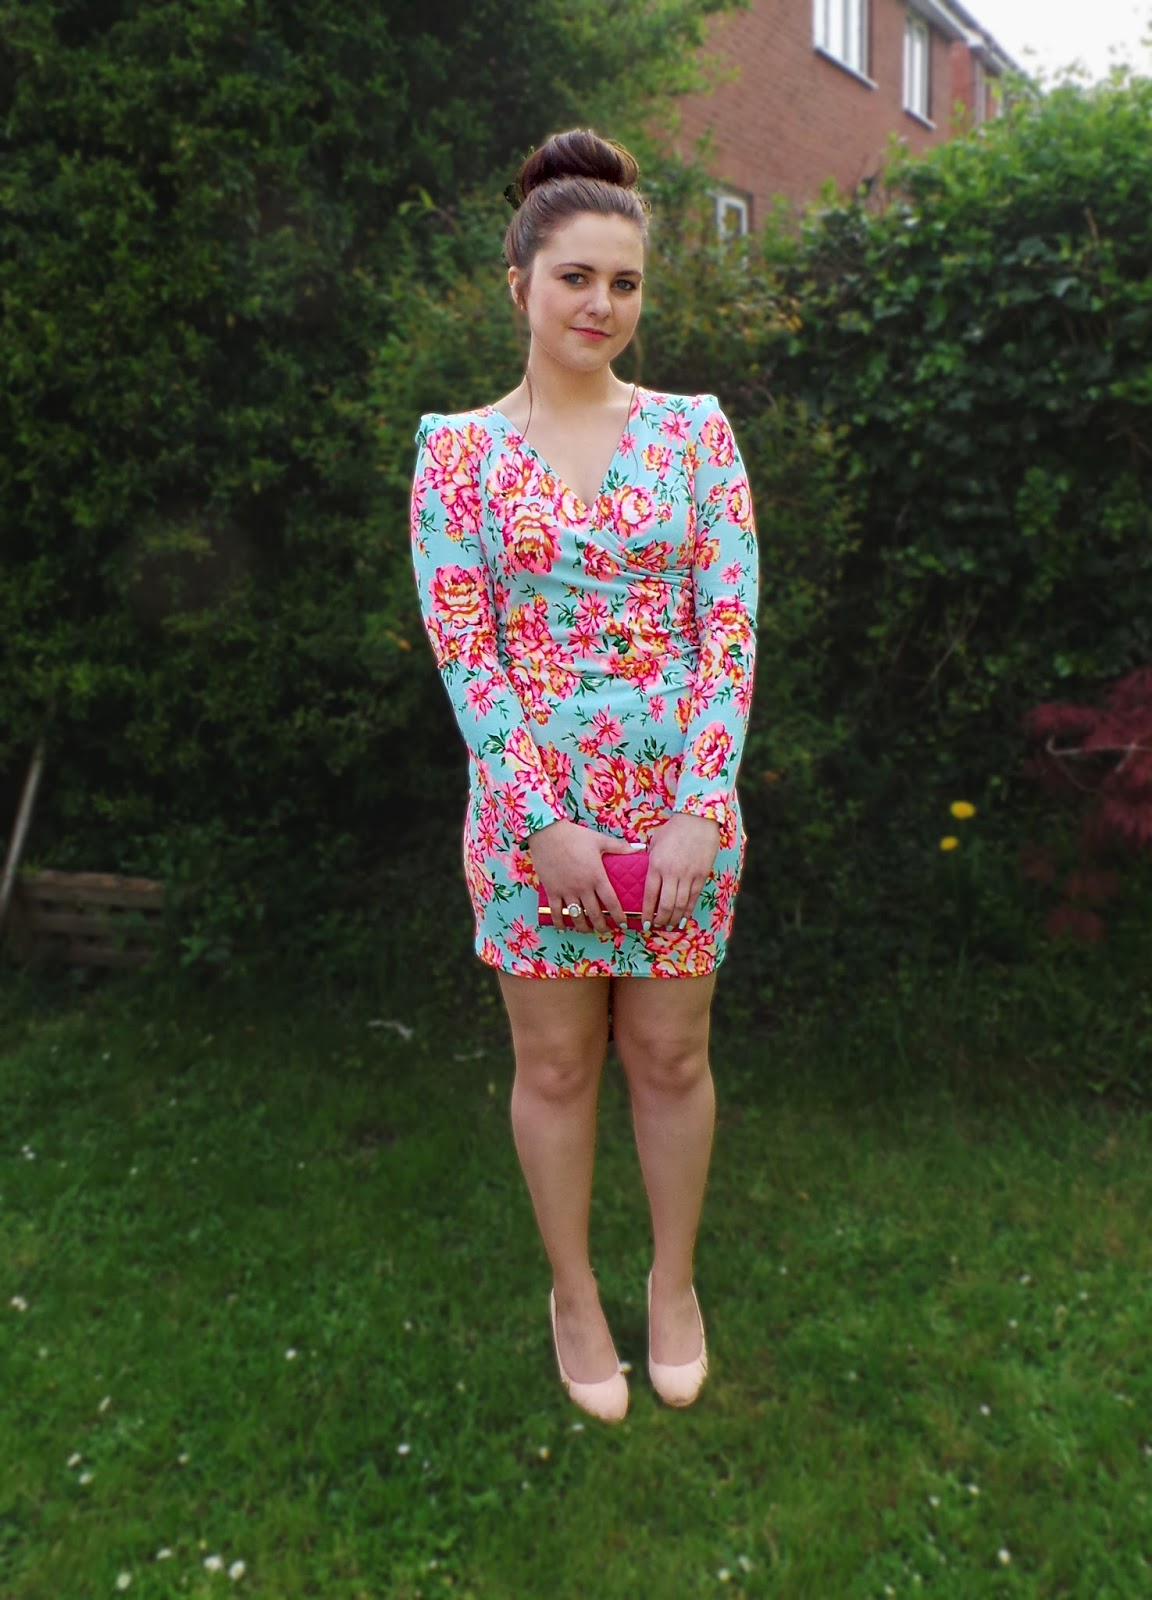 ikrush dress, ikrush review, lauras all made up blog, uk fashion blog, uk fashion blogger, fbloggers, blog, blog post, outfit, OOTD, outfit post blog, style blog, fashion and style blog, lookbook blog, spring dress, floral dress, bodycon floral dress, bodycon dress, pretty dress,